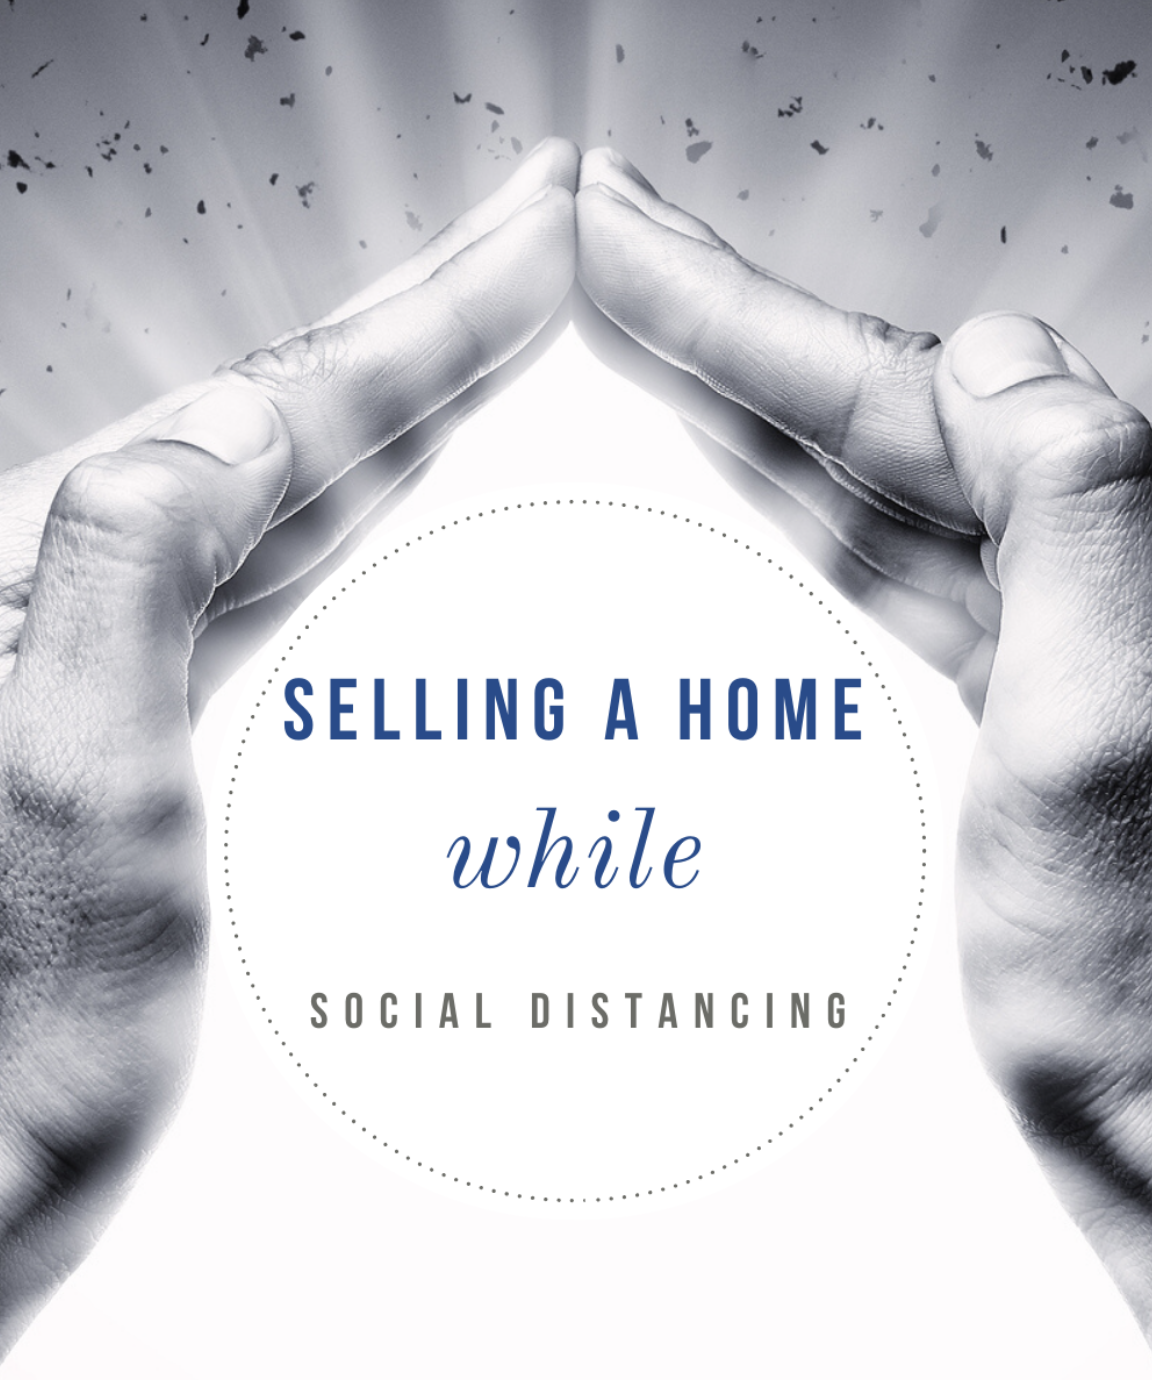 Selling a home while social distancing in Memphis Tn